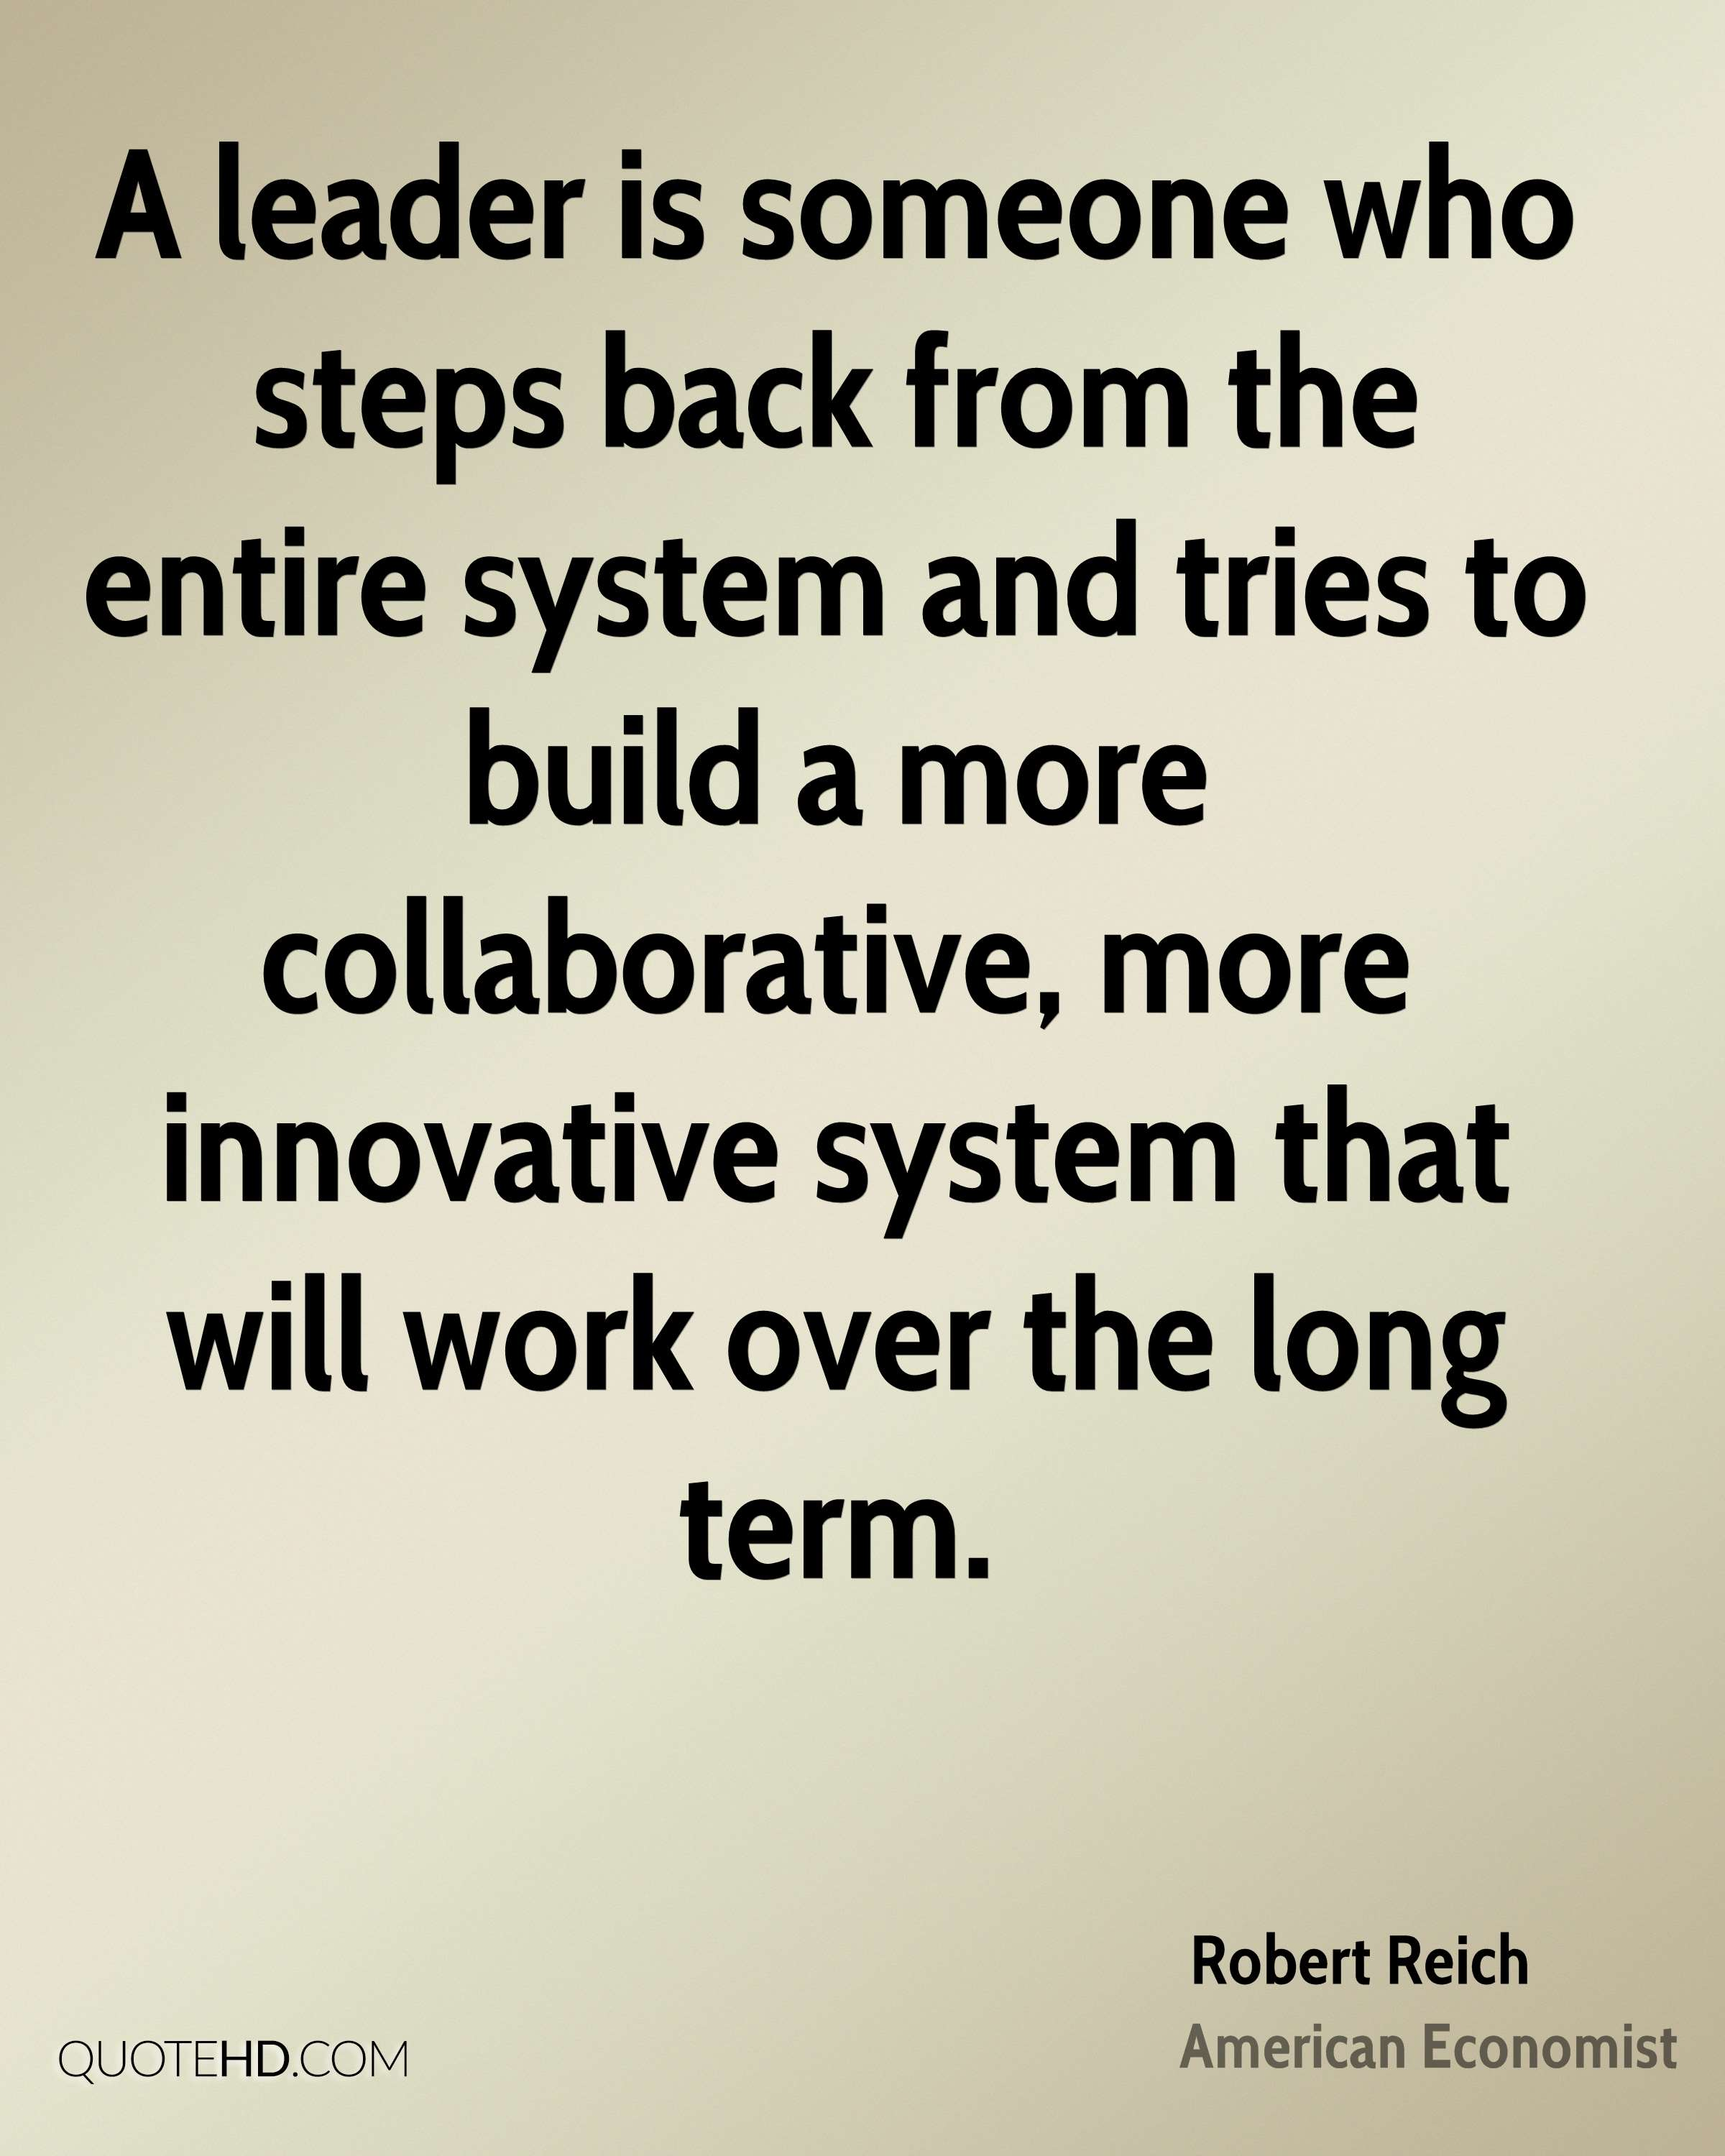 A leader is someone who steps back from the entire system and tries to build a more collaborative, more innovative system that will work over the long term.